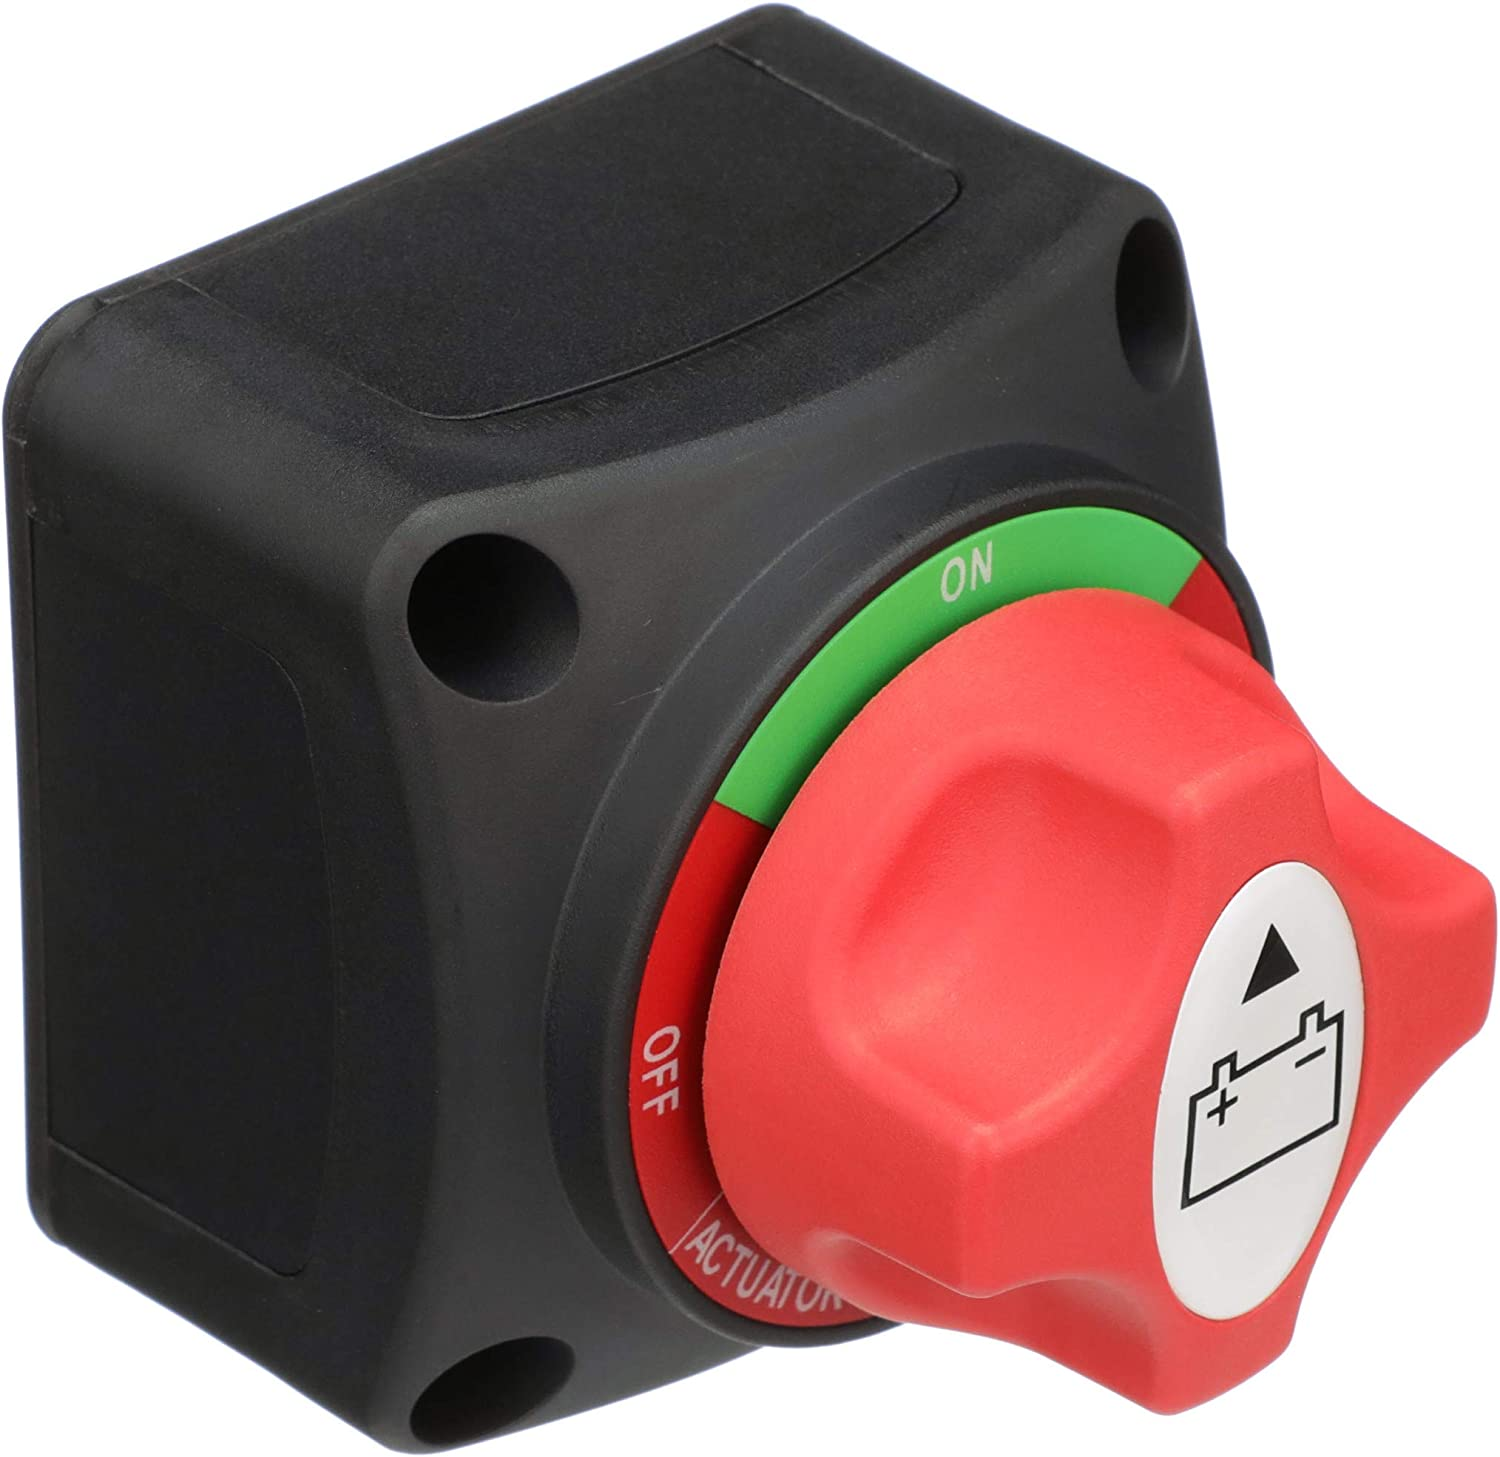 Attwood 14233-7 Battery Switch — On/Off Power Switch for Single Battery, Removable Control Knob, 12- to 50-Volt DC